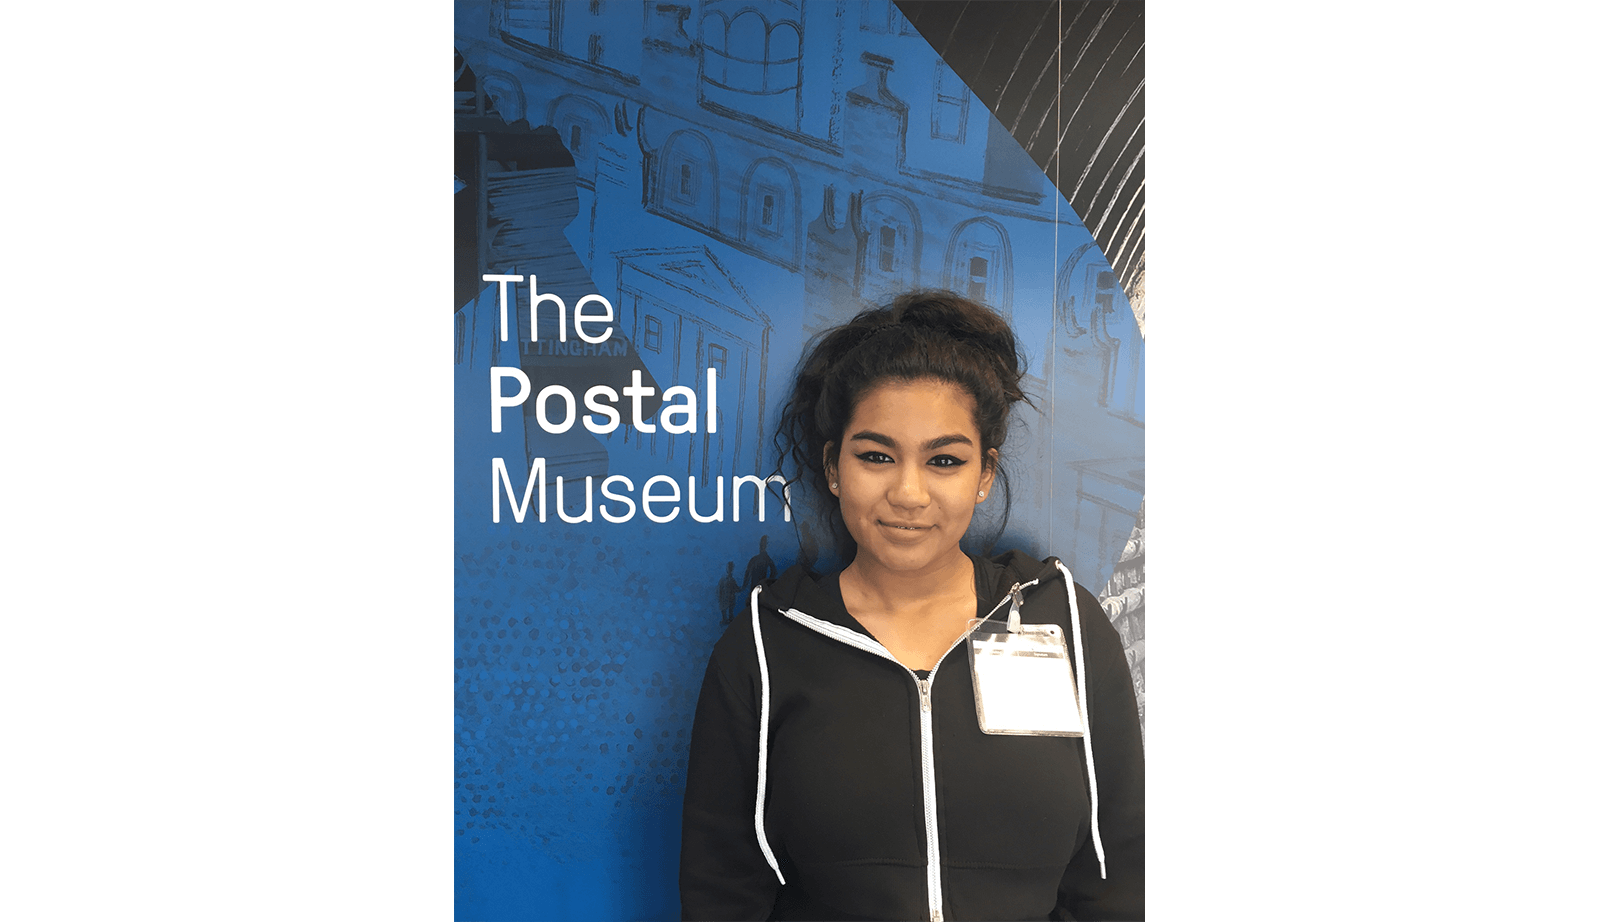 Leanna at The Postal Museum